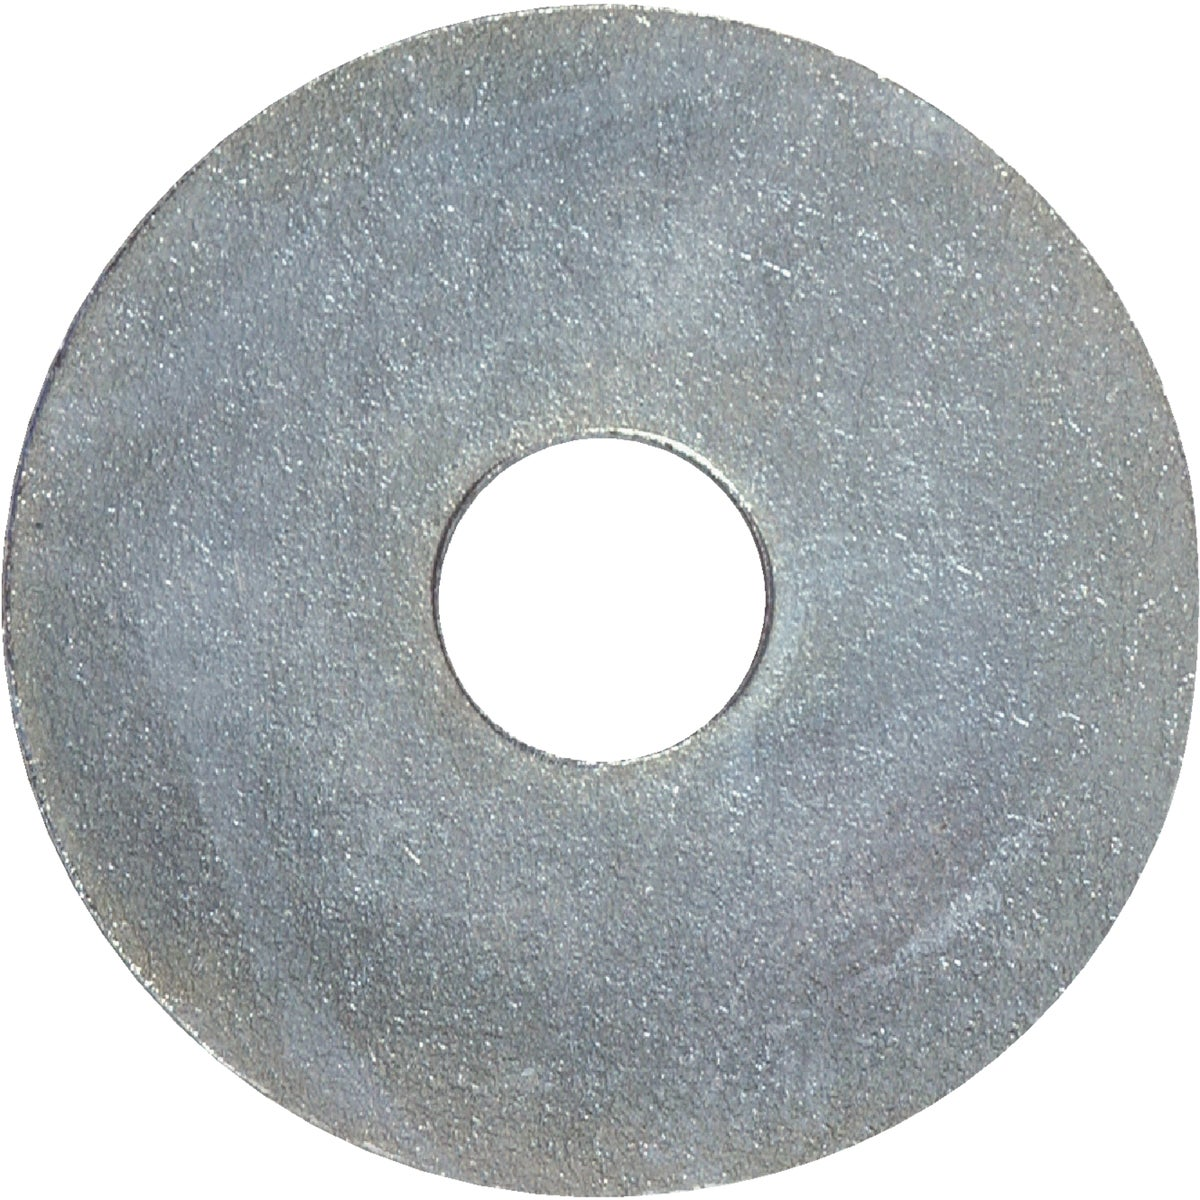 1/4X1-1/4 FENDER WASHER